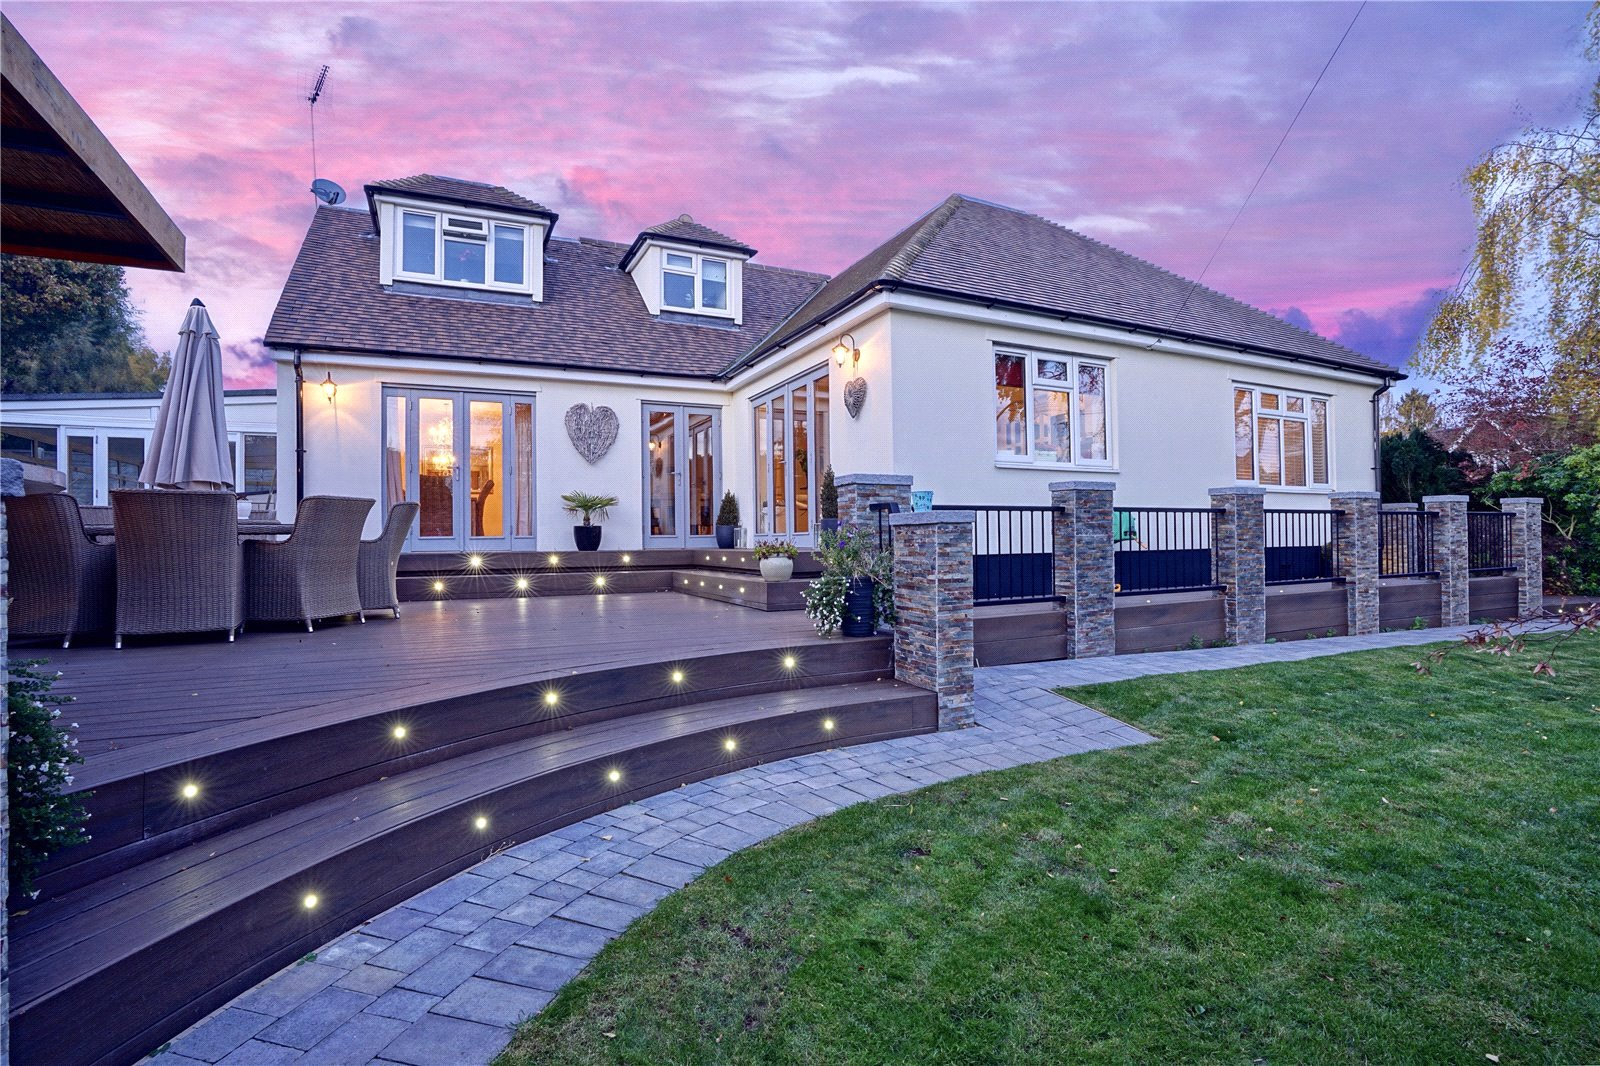 4 bed house for sale in Heathbrow Road, Old Welwyn  - Property Image 2